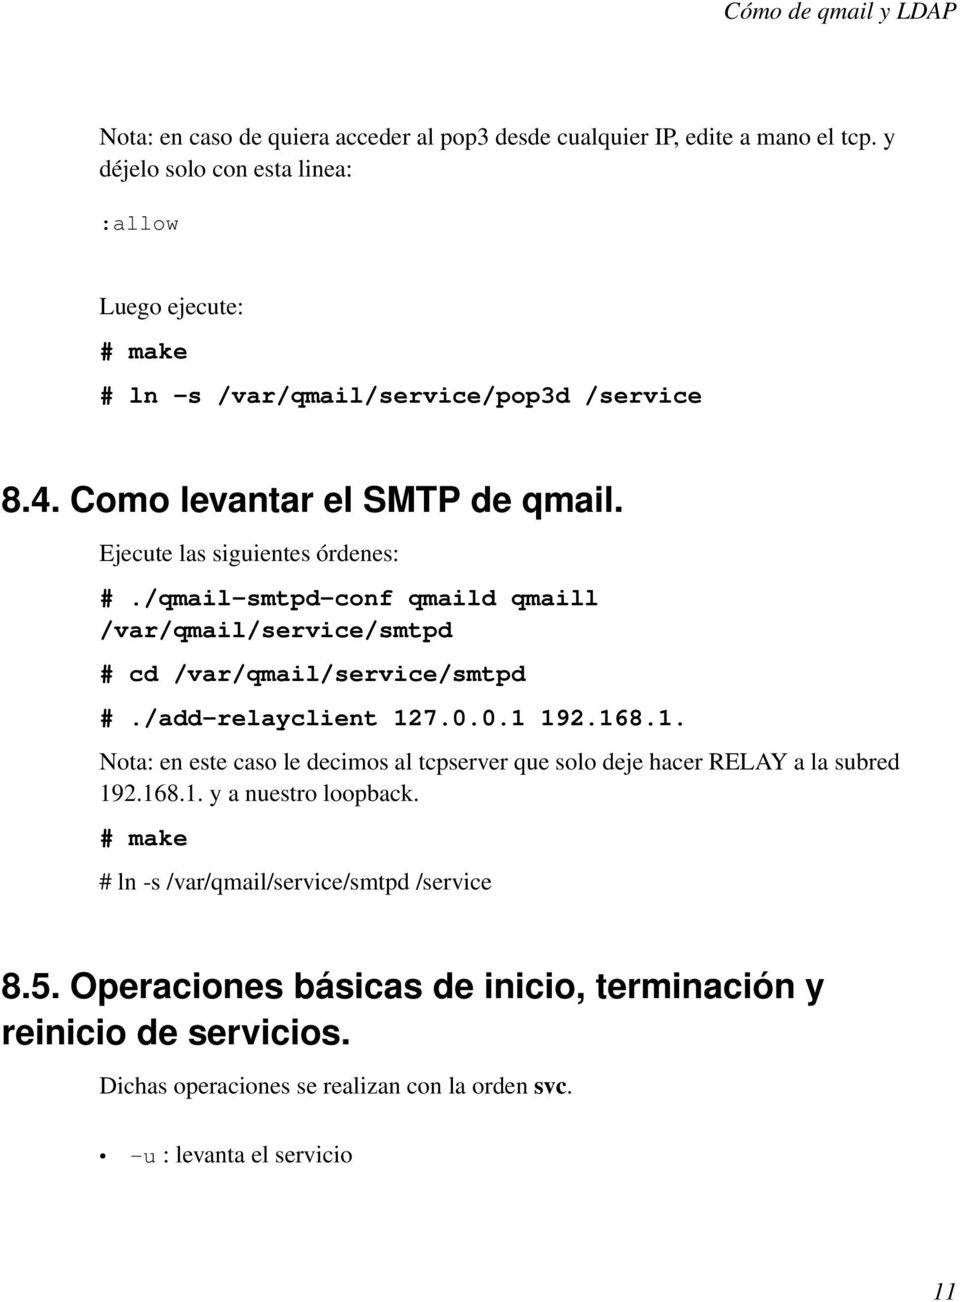 /qmail-smtpd-conf qmaild qmaill /var/qmail/service/smtpd # cd /var/qmail/service/smtpd #./add-relayclient 12